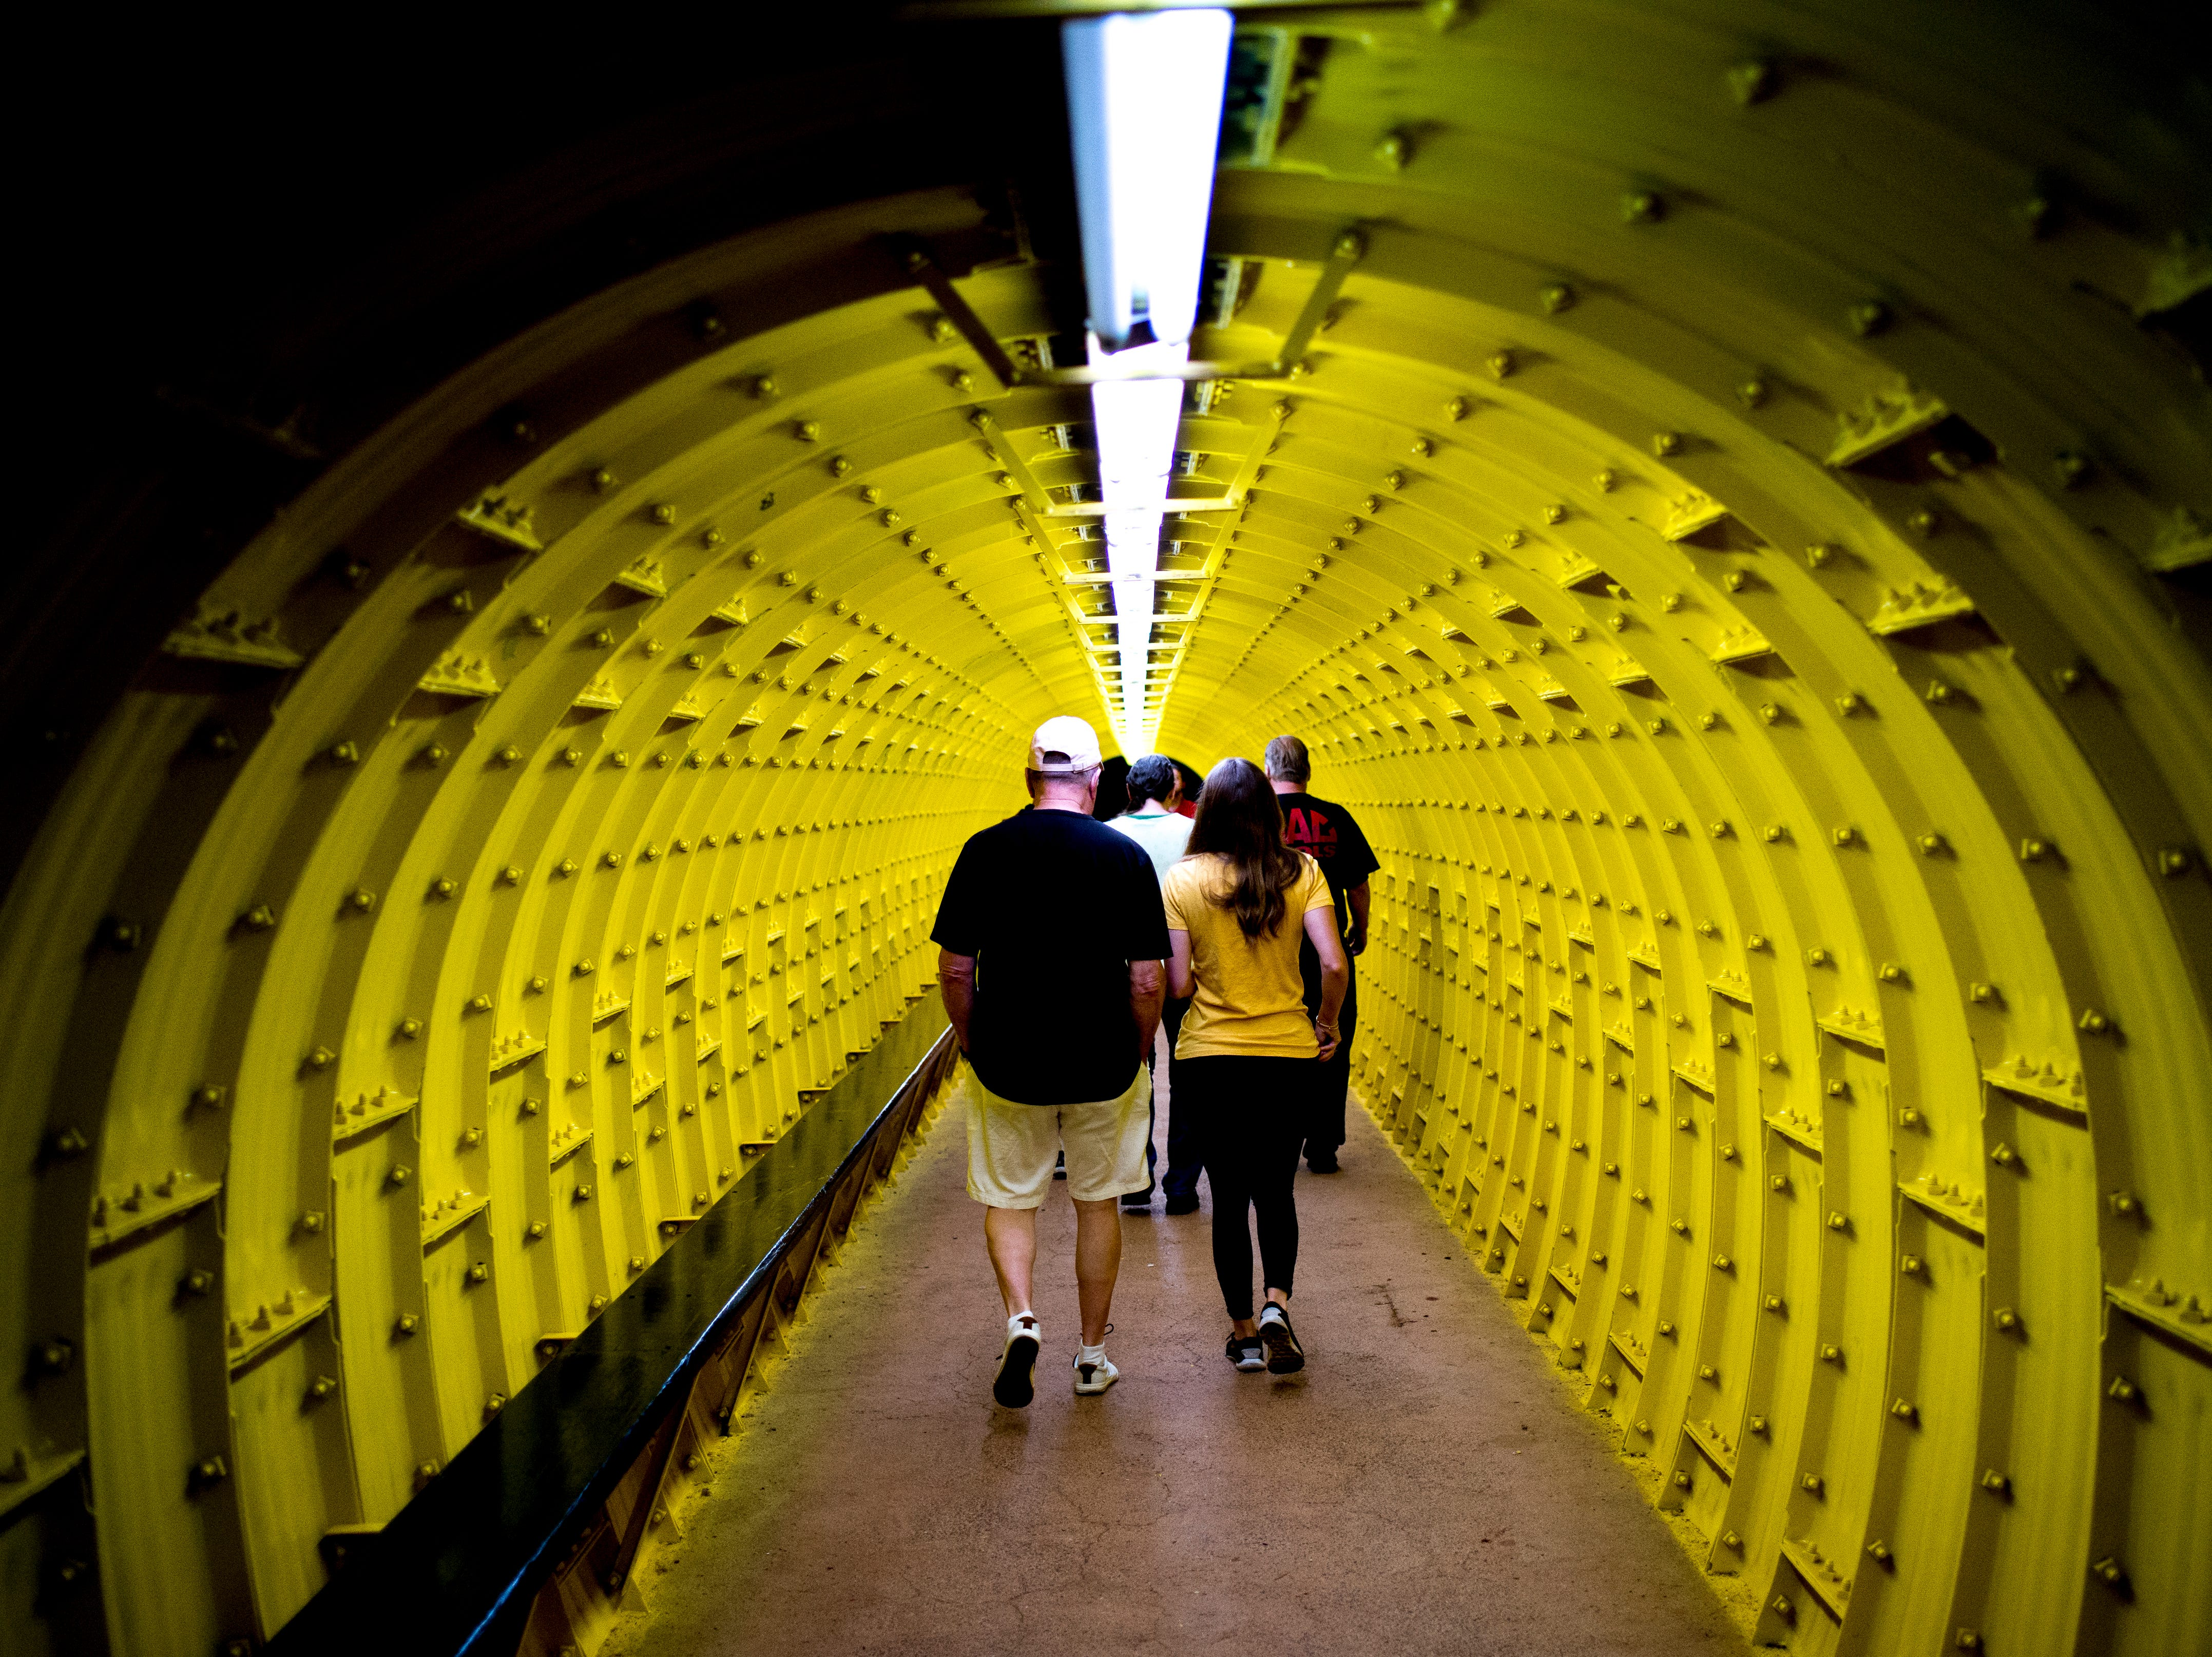 Visitors walk down a tunnel to reach the caves at the Lost Sea Adventure underground cave attraction outside of Sweetwater, Tennessee on Wednesday, August 15, 2018. The cave system dates back some 20,000 years and today features points of interests like an old moonshine still, rock formations, Confederate Army graffiti and the popular boat ride in a natural lake stocked with 200 rainbow trout.